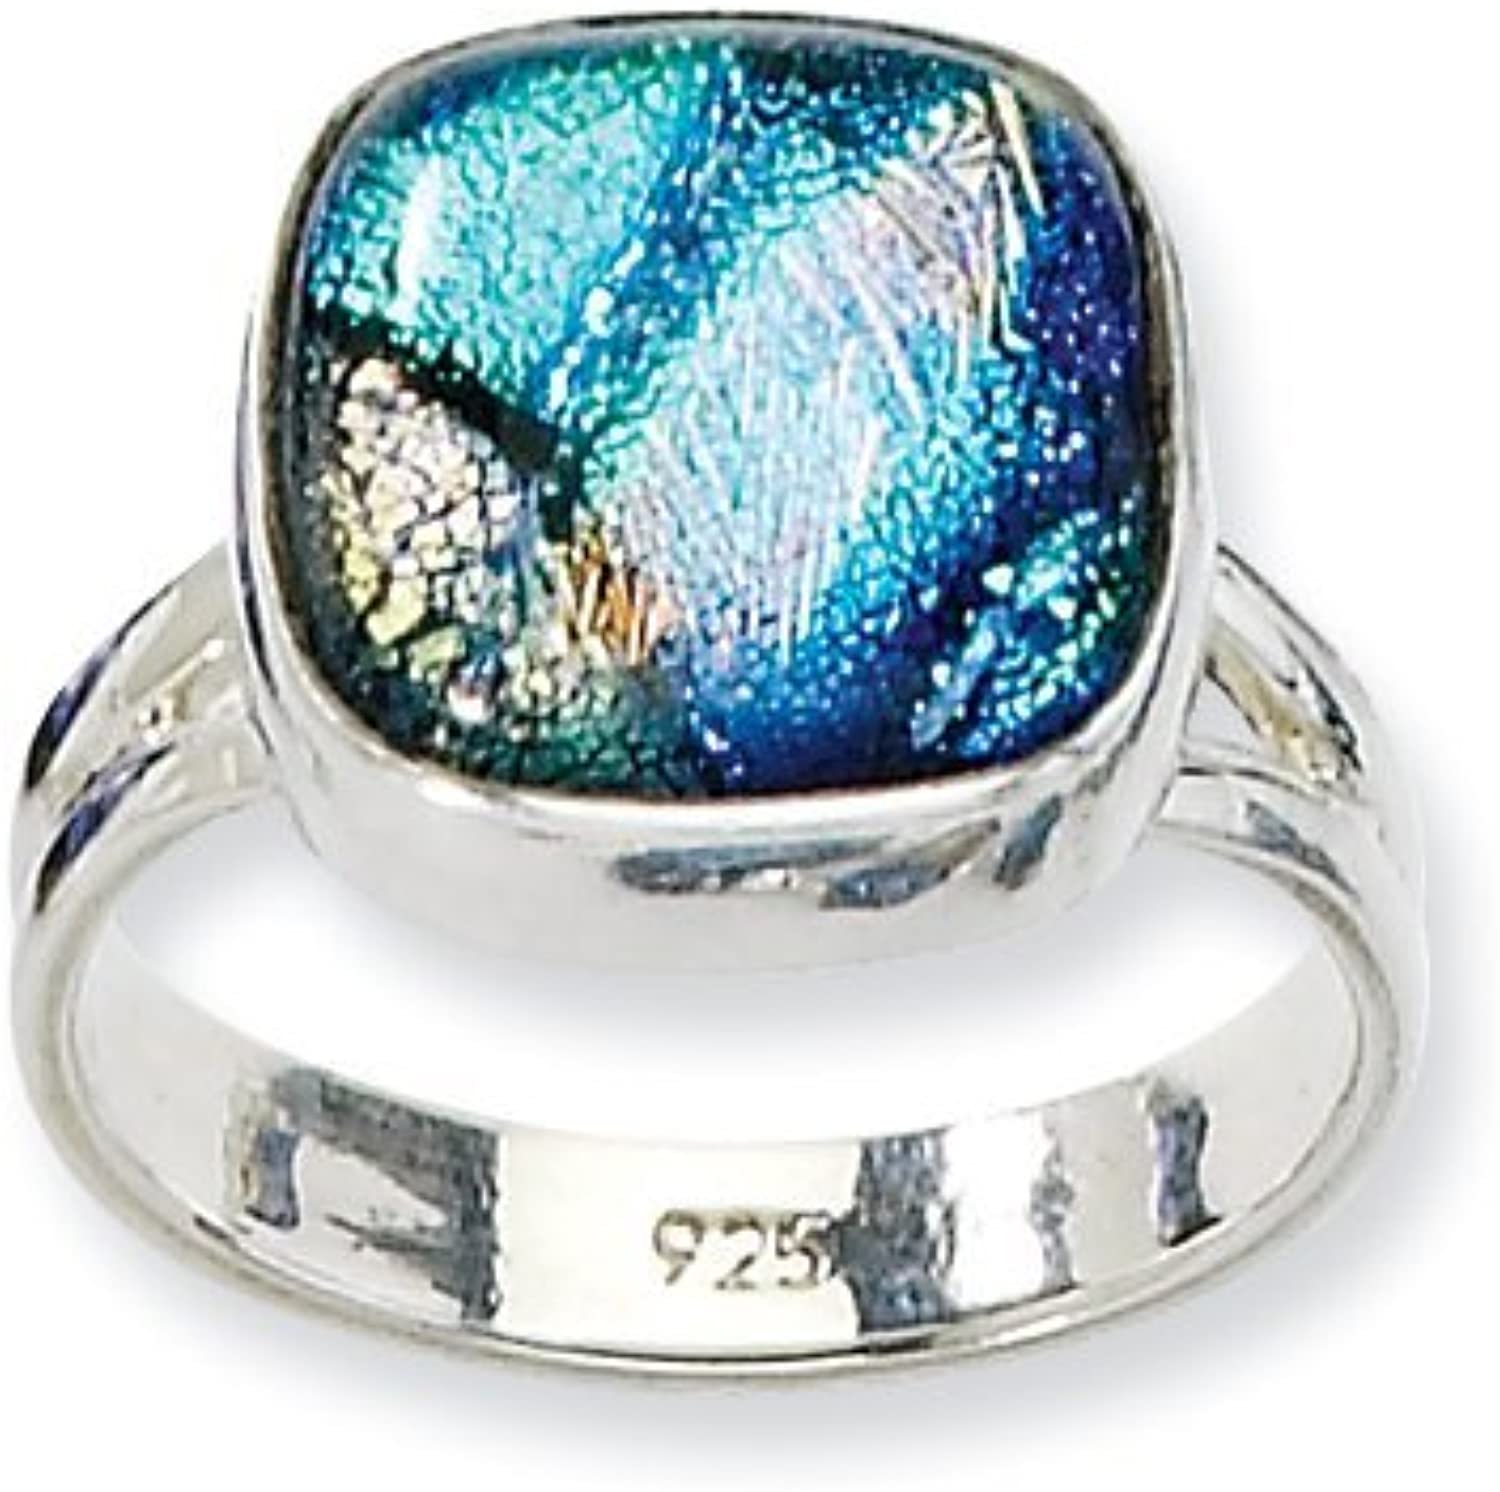 gold and Watches Sterling Silver bluee Dichroic Glass Ring